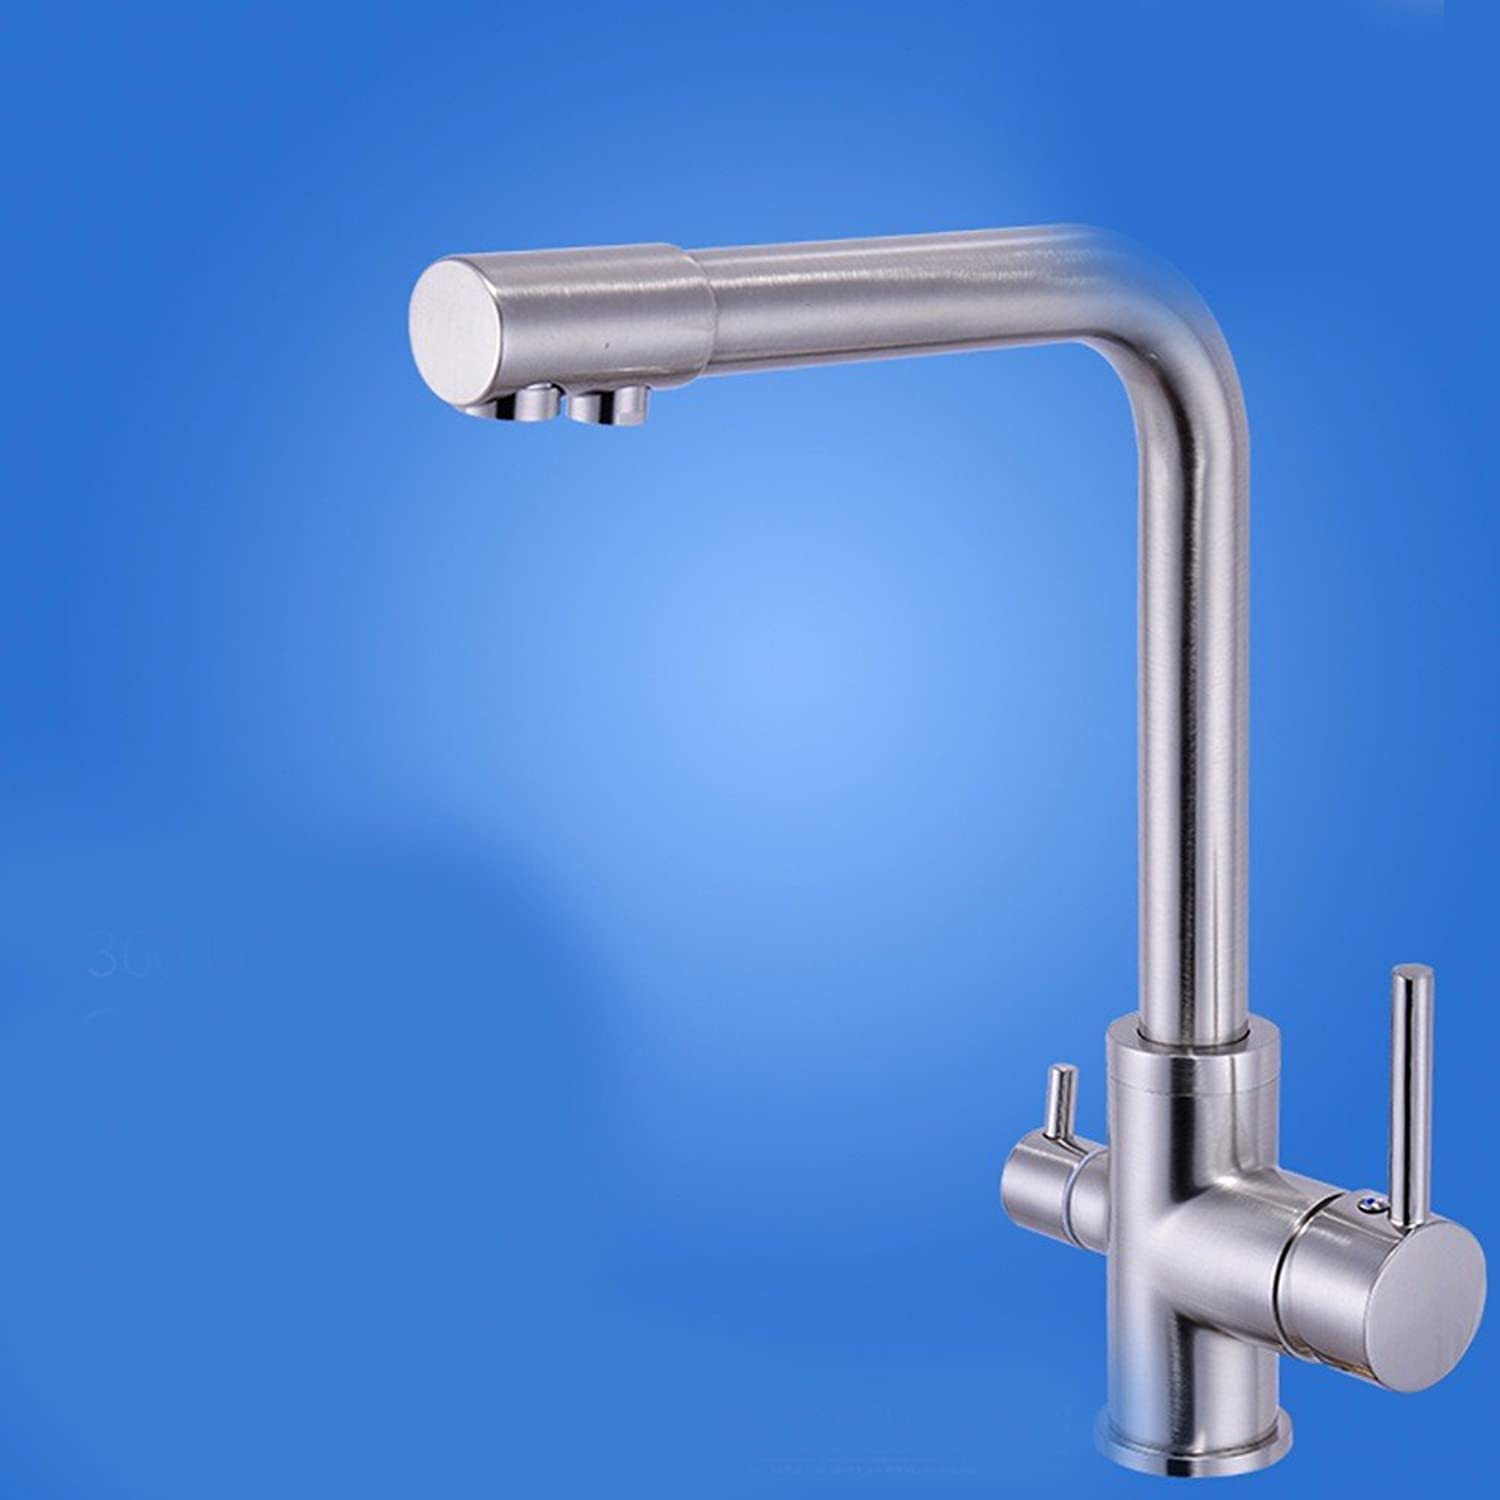 Lpophy Bathroom Sink Mixer Taps Faucet Bath Waterfall Cold and Hot Water Tap for Washroom Bathroom and Kitchen Copper Hot and Cold Single Handle Single Hole C